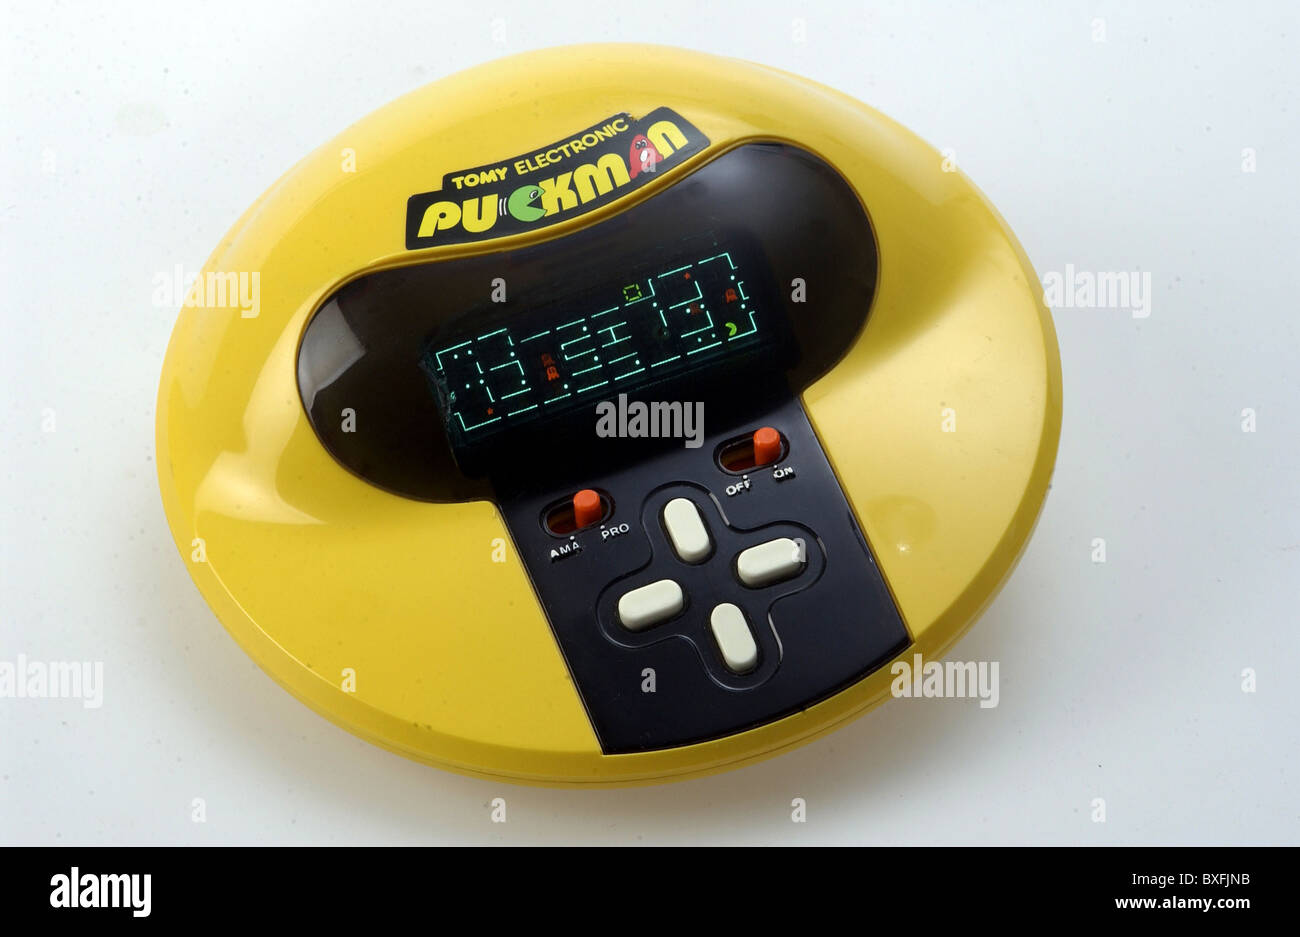 80s Electronic Toys : Toys tomy electronic puckman toy by